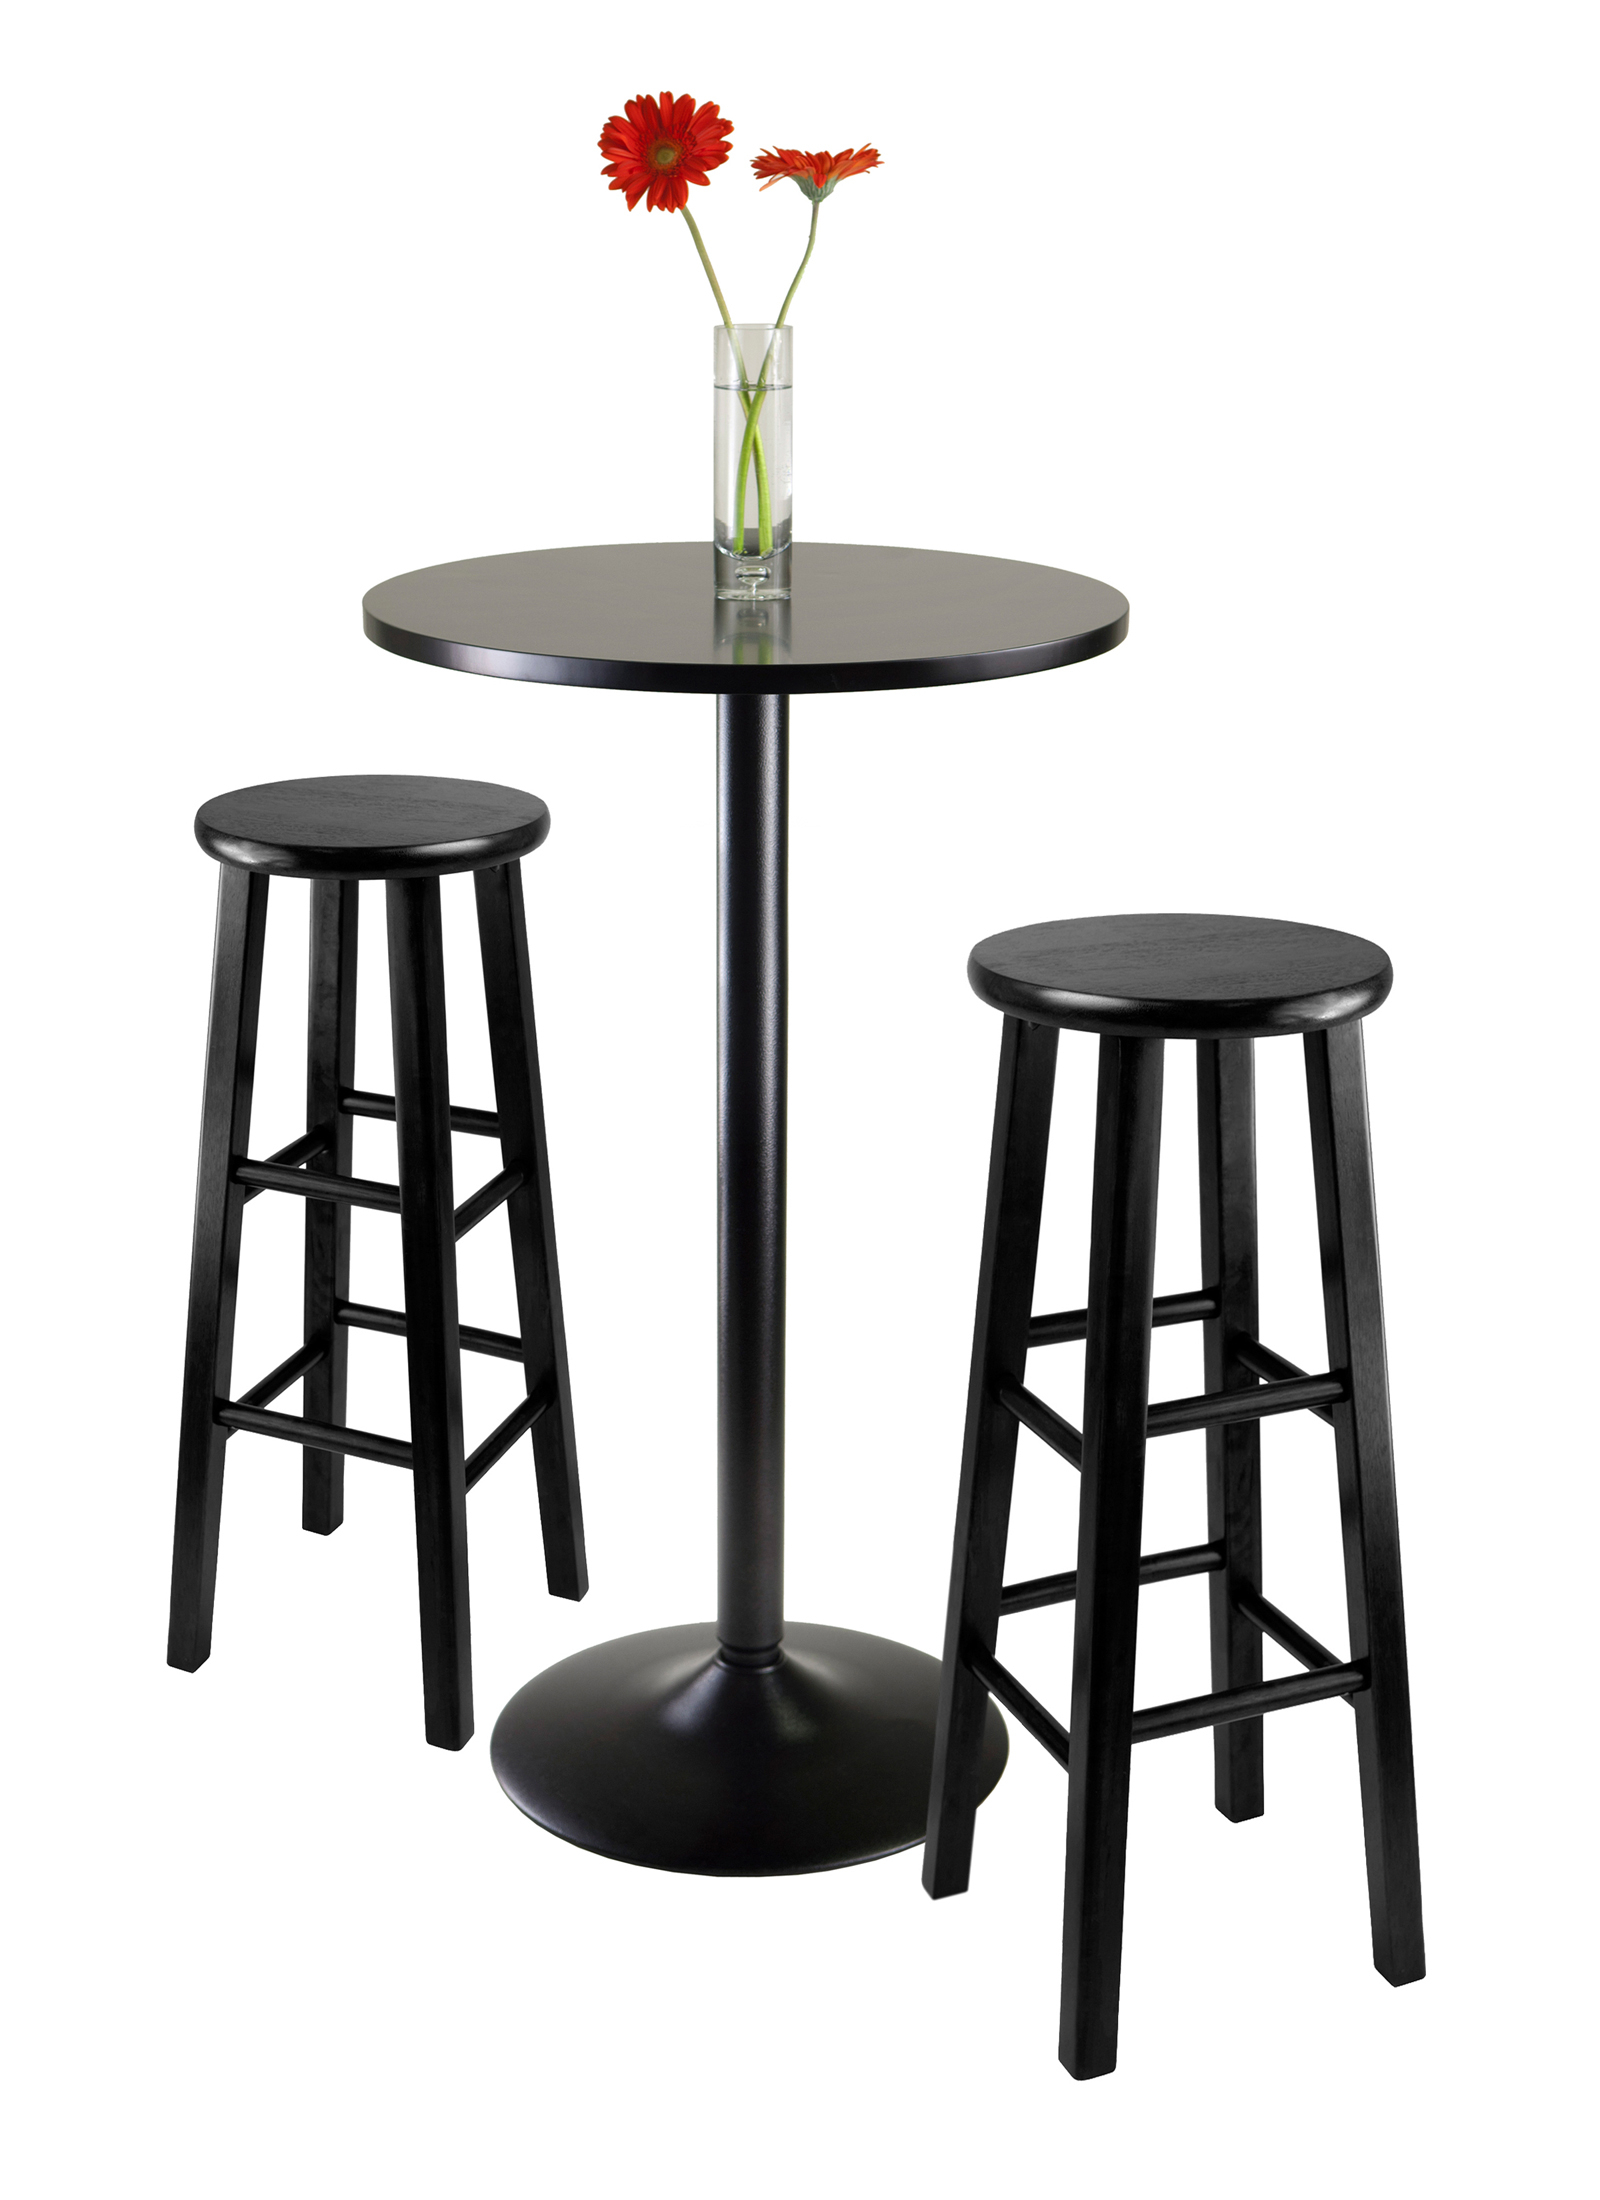 Most Popular Winsome Wood Obsidian 3 Piece Round Black Pub Table Set With Regard To Winsome 3 Piece Counter Height Dining Sets (View 17 of 20)